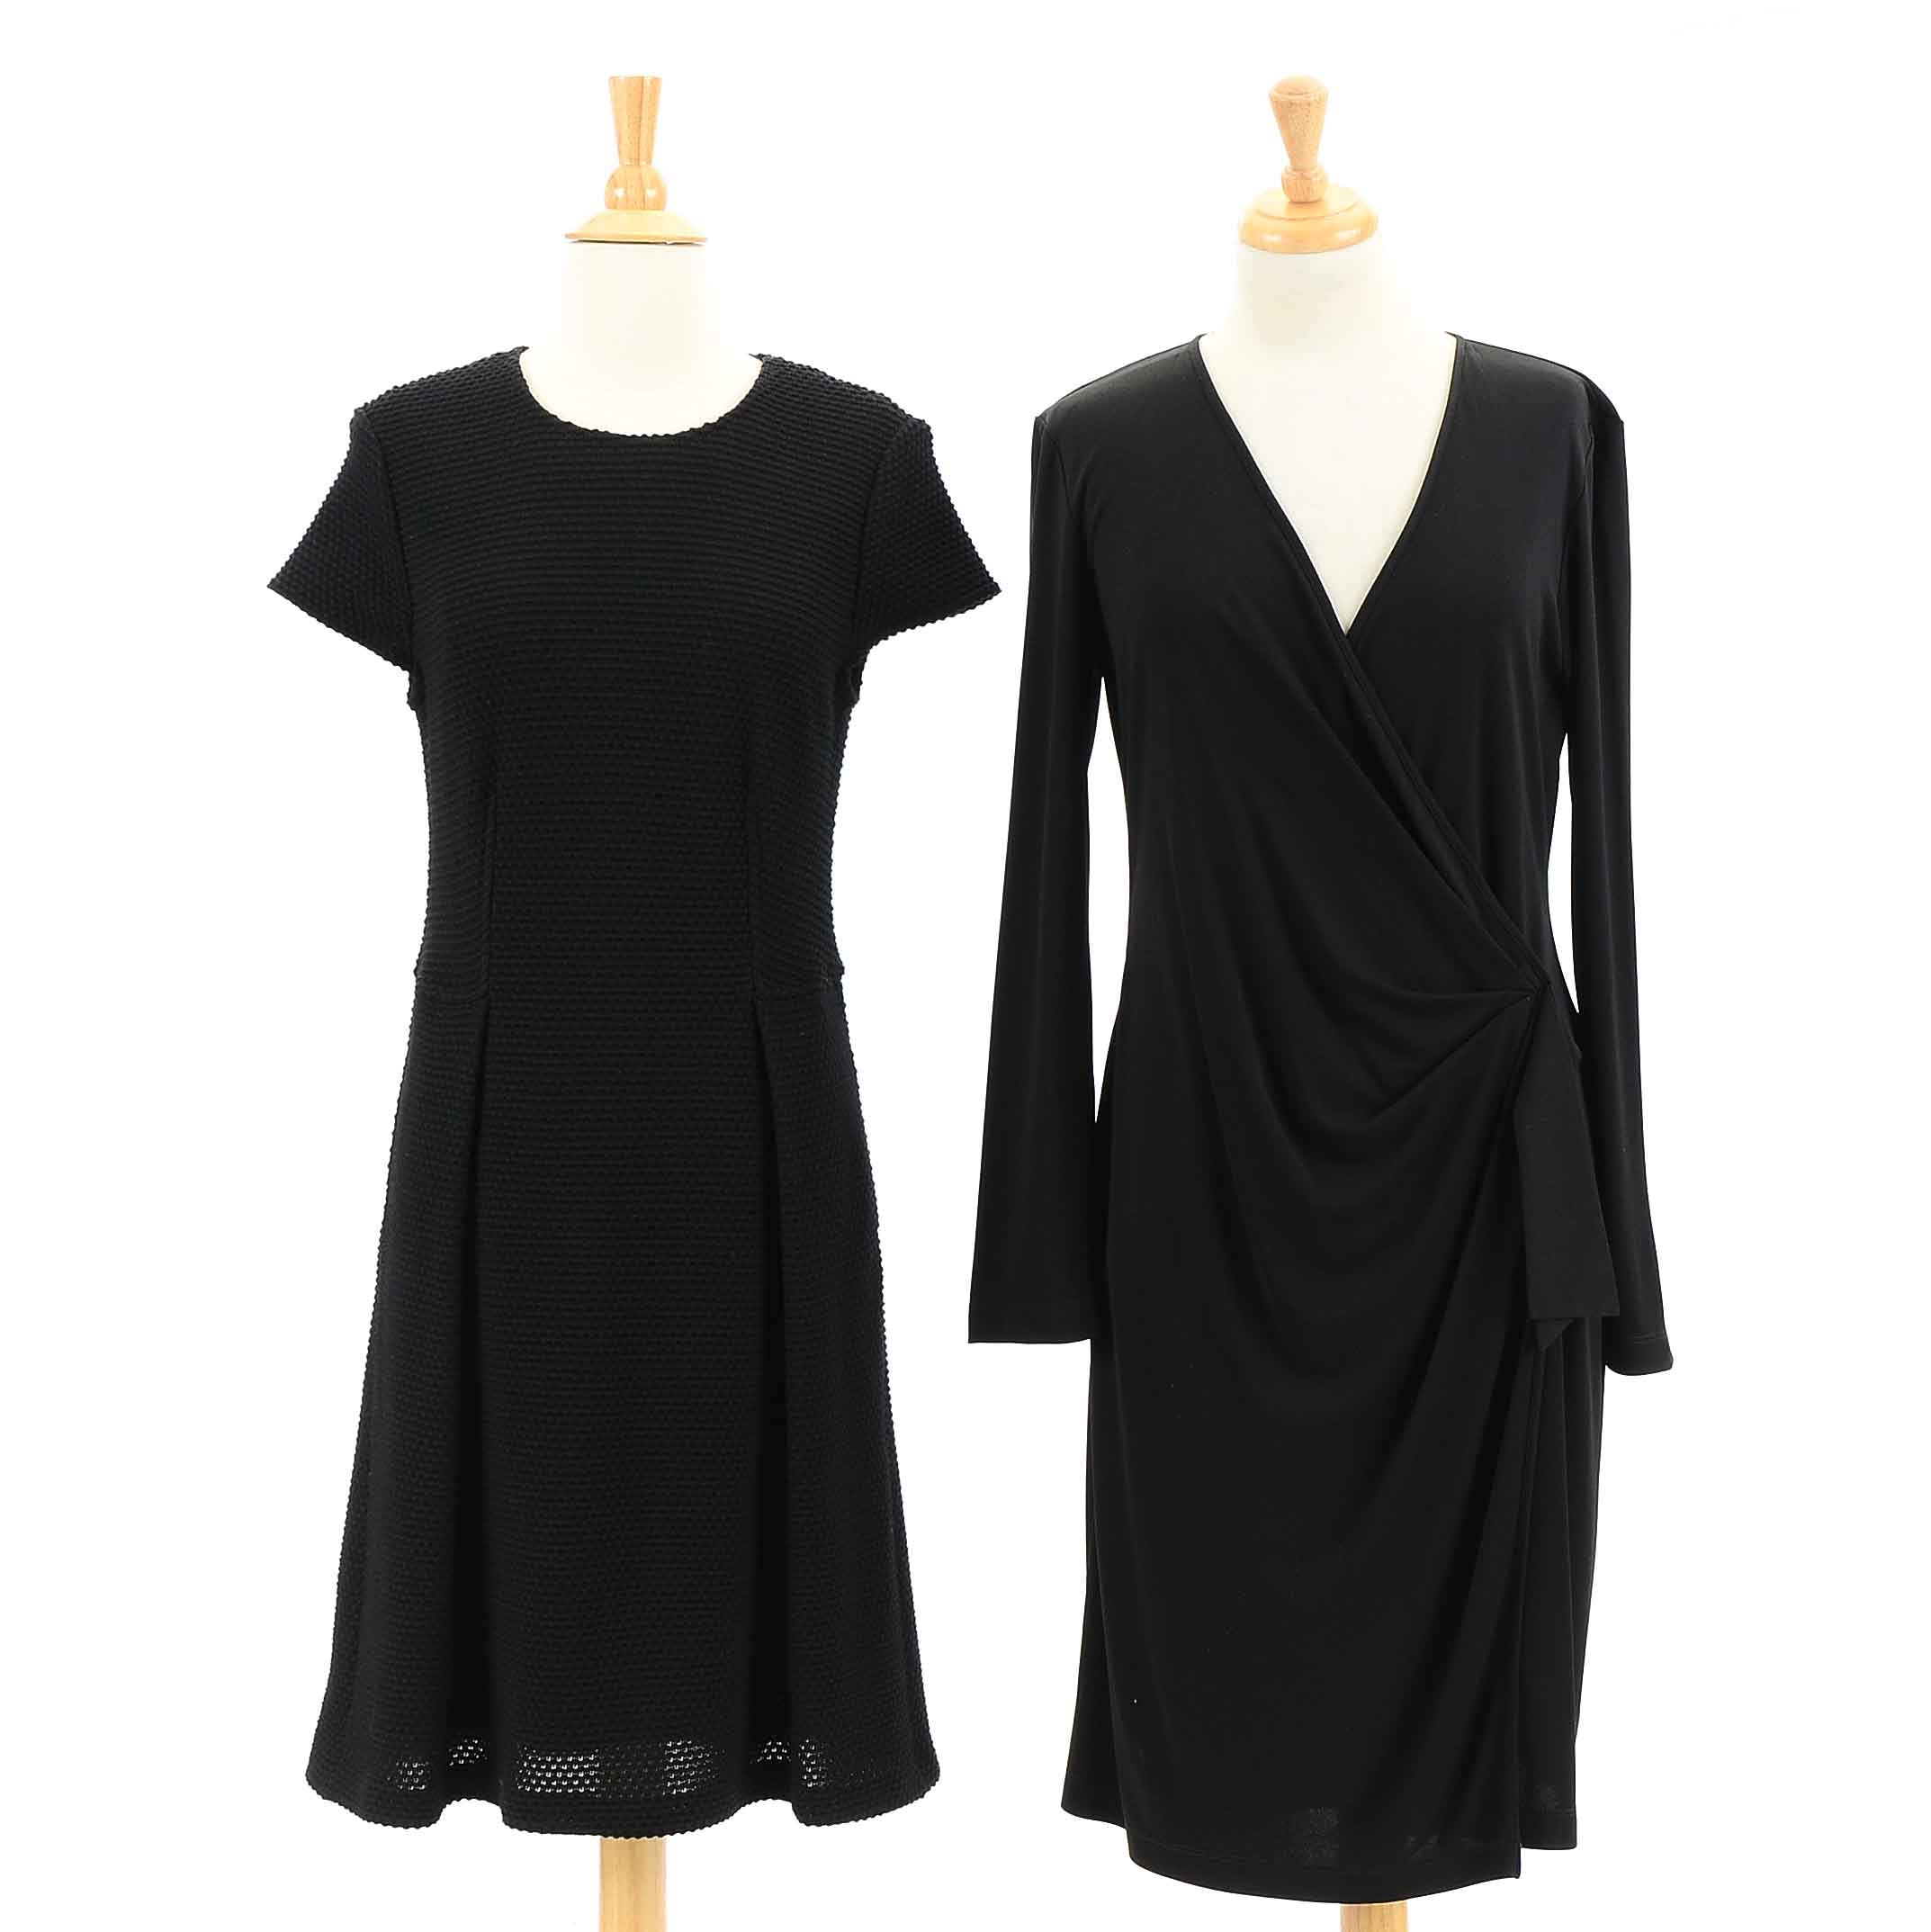 St. John Black Dresses